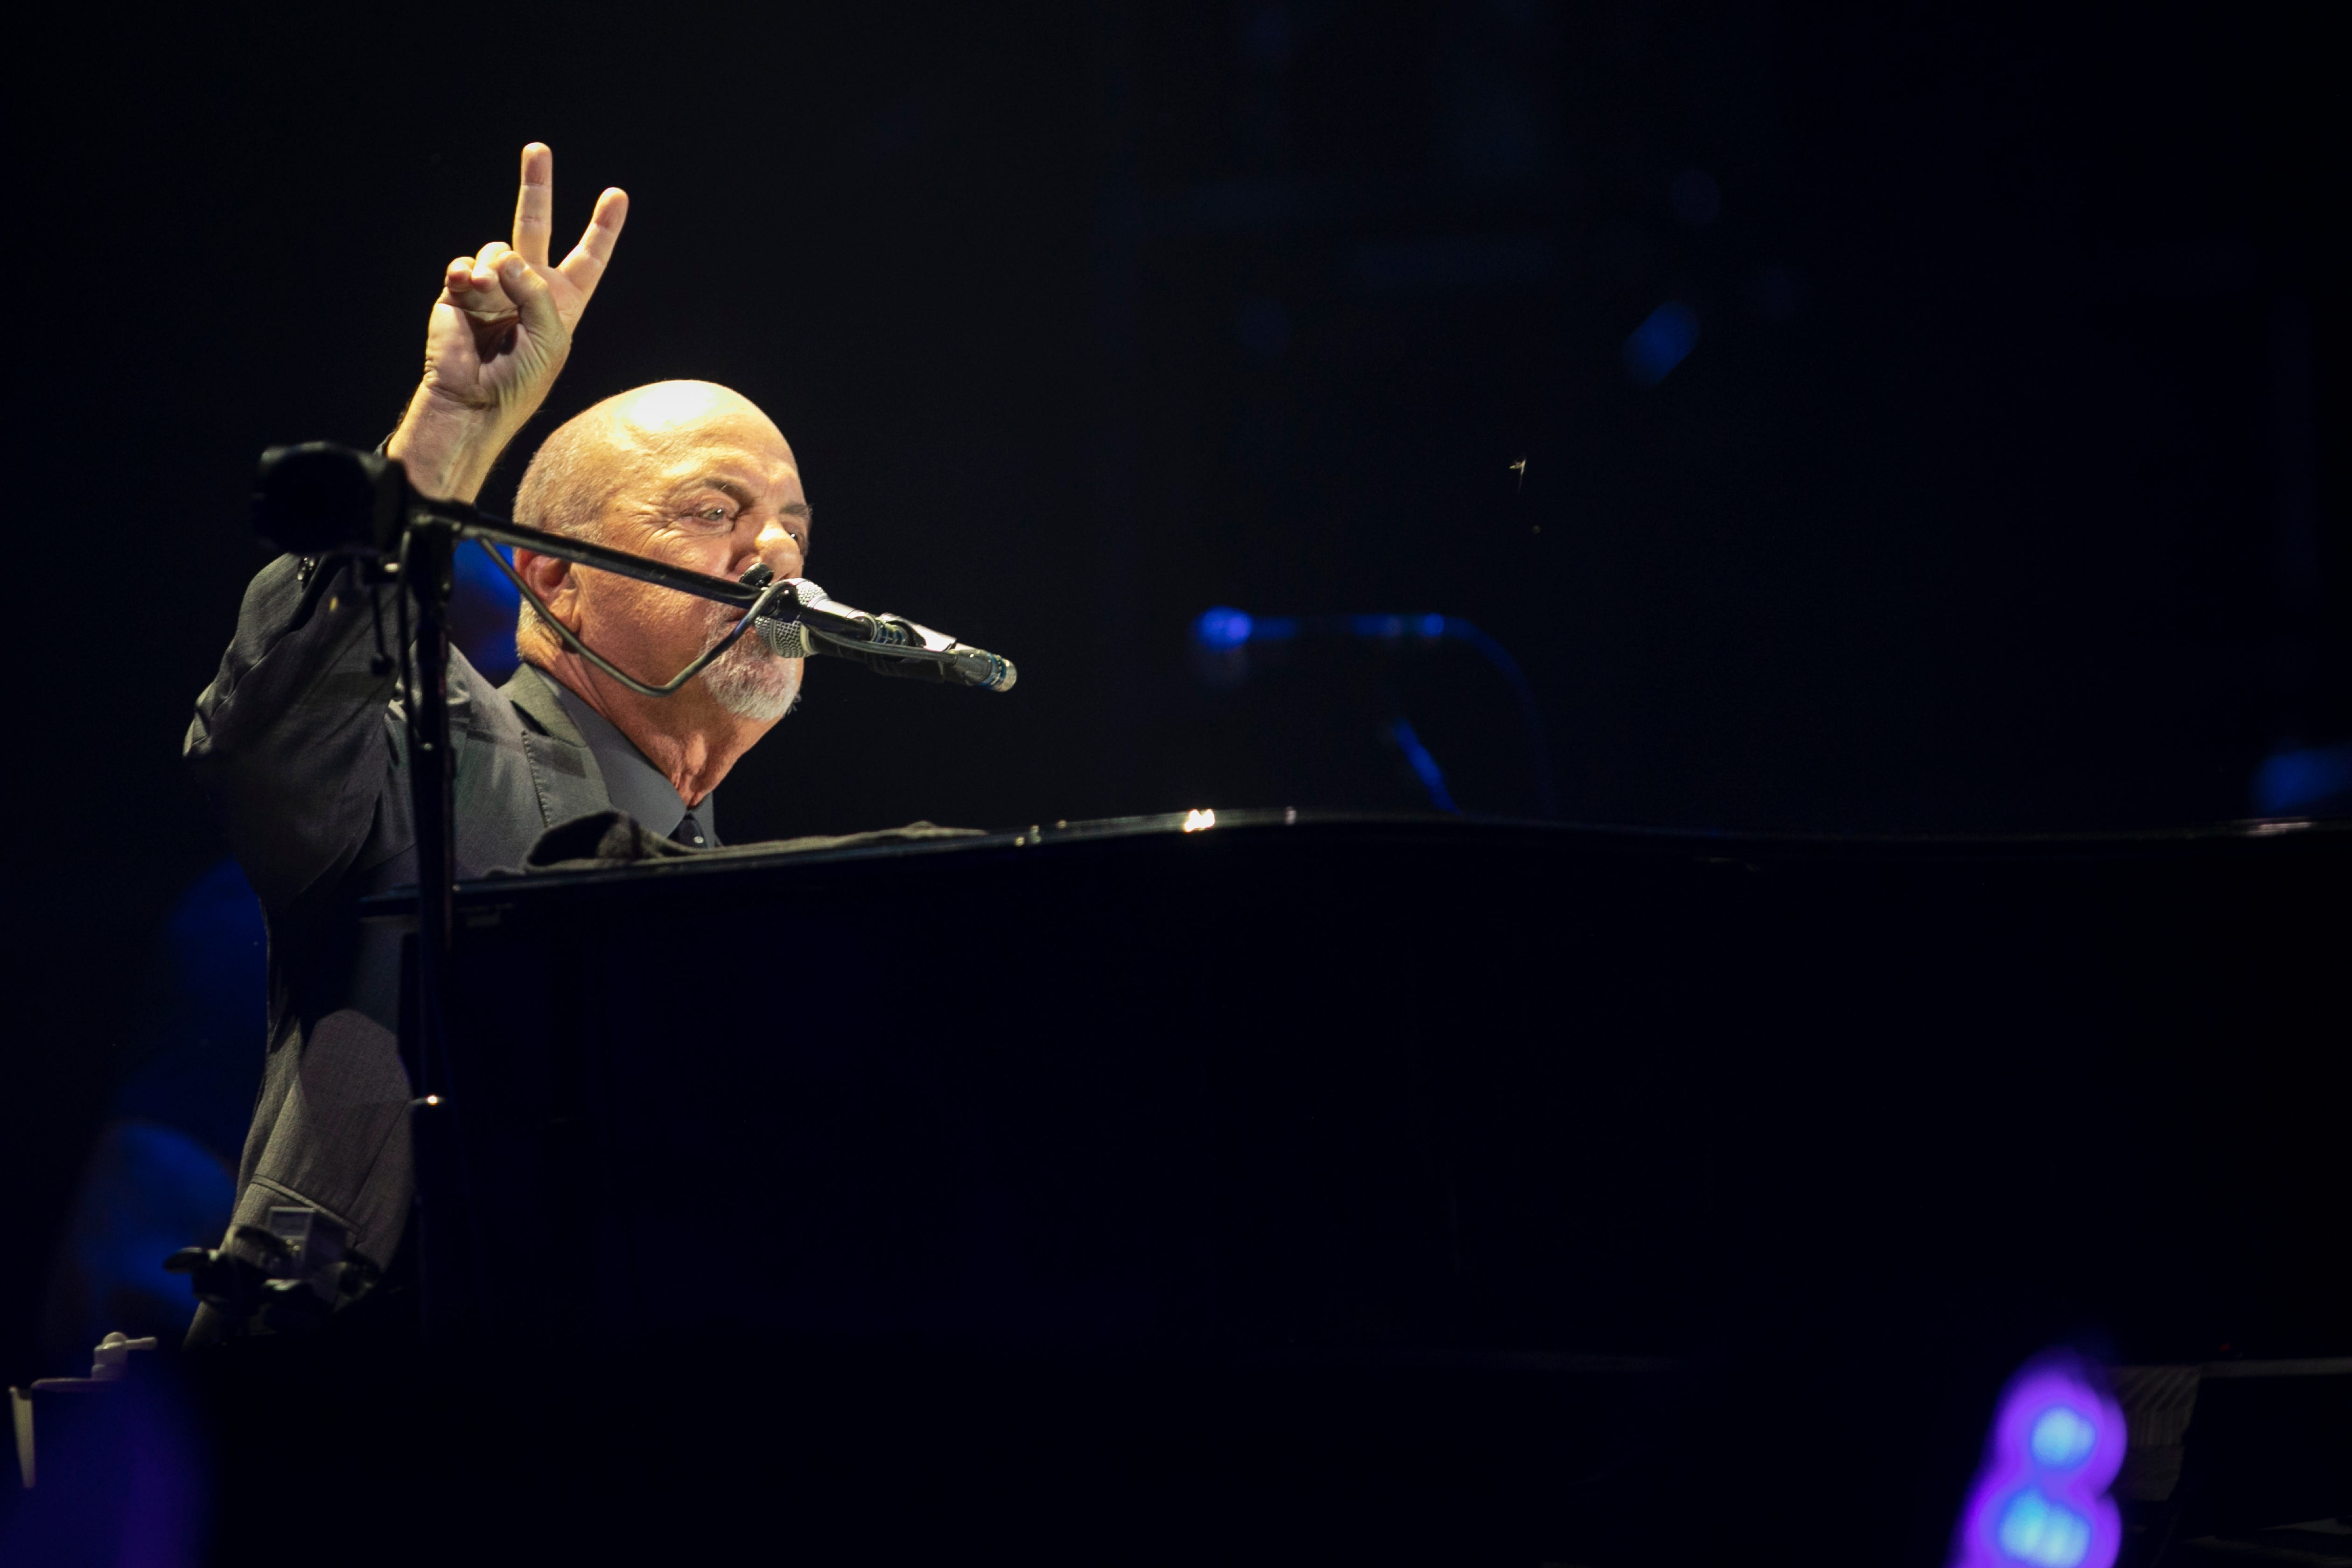 He knows he ll never make the Hall of Fame : Billy Joel changes Pete Rose lyrics at Reds stadium